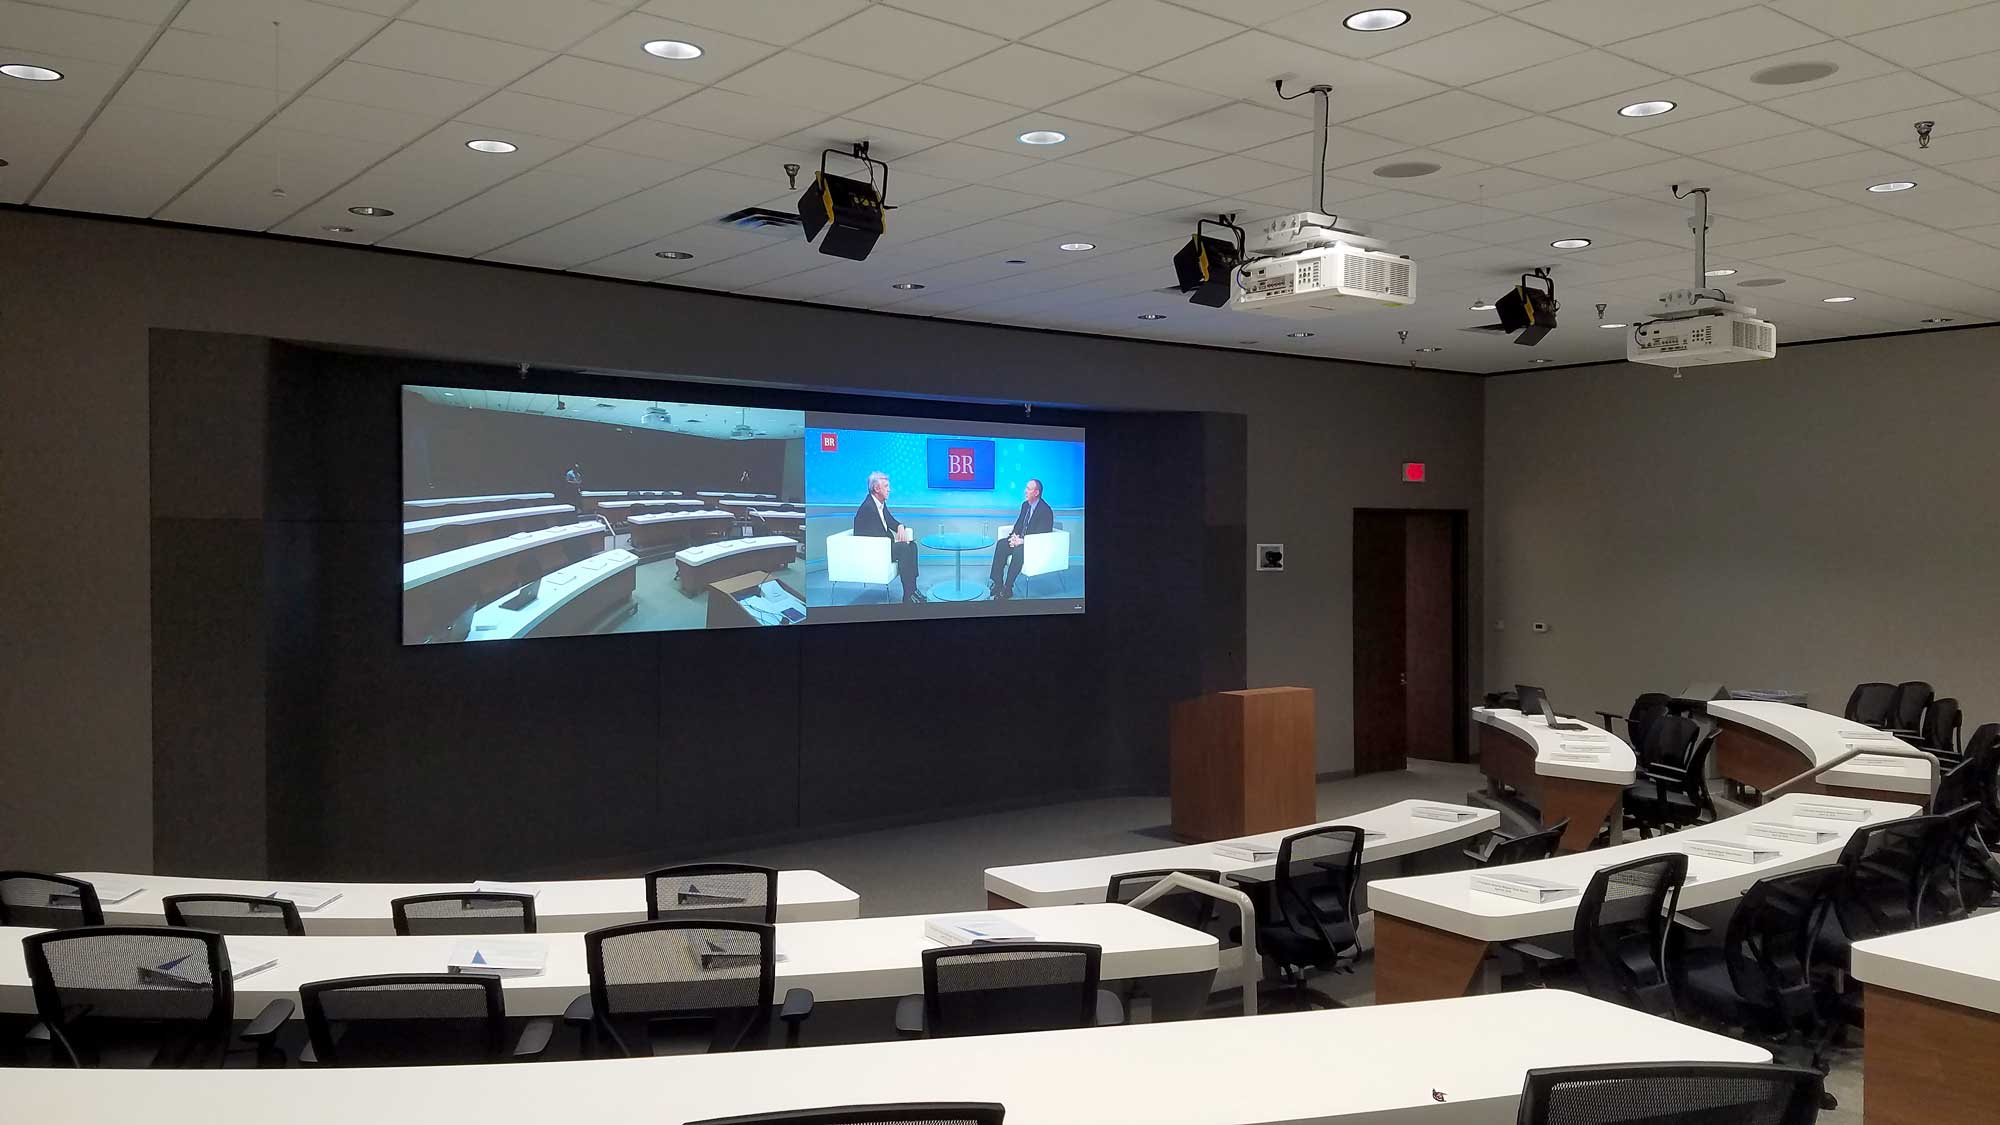 Emerson conferencing and collaboration center audio speakers and video projection system